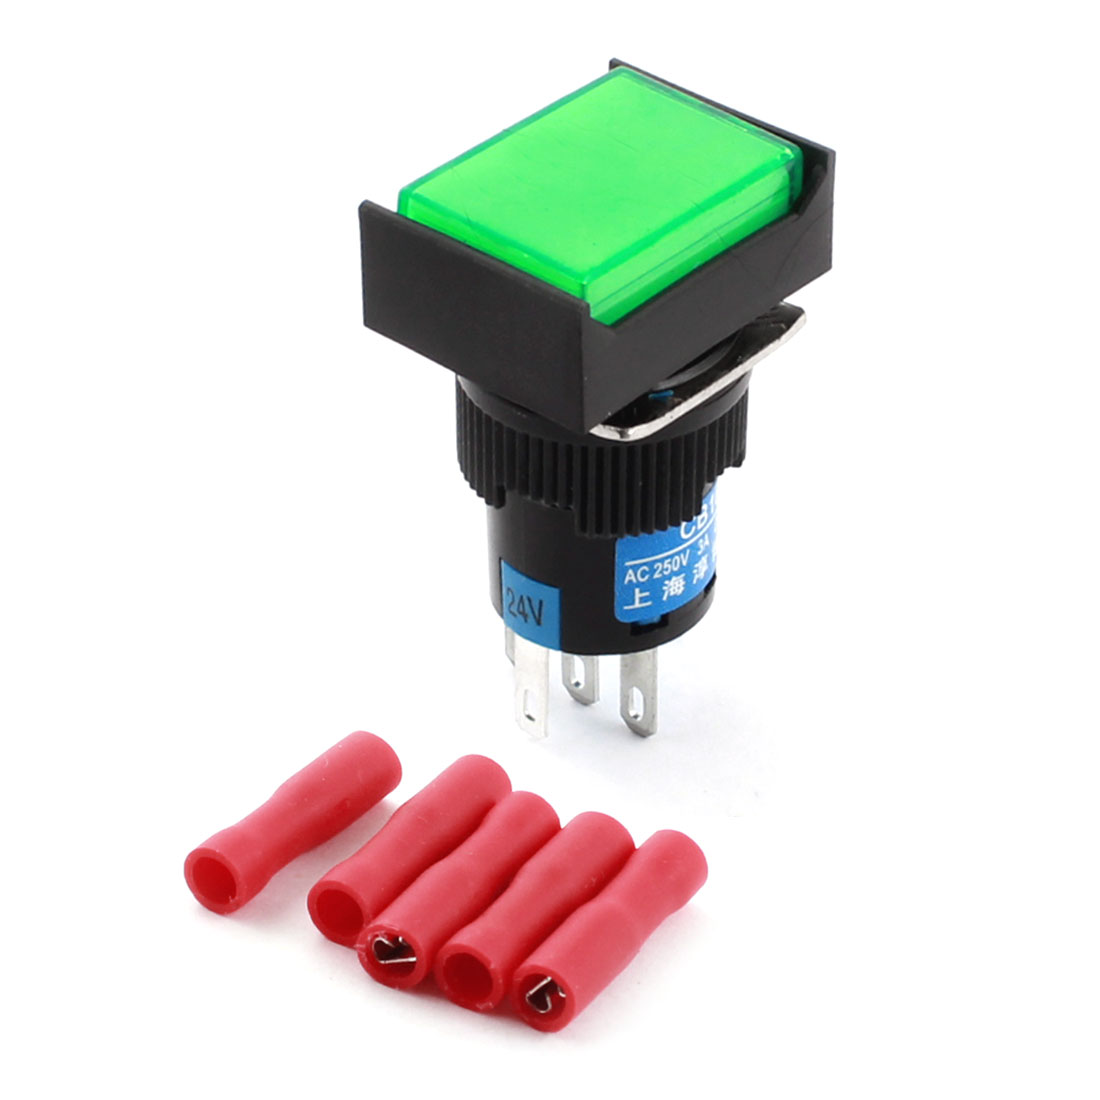 DC 24V Green Lamp Locking Rectangle Push Button Switch + Insulated Crimp Terminal